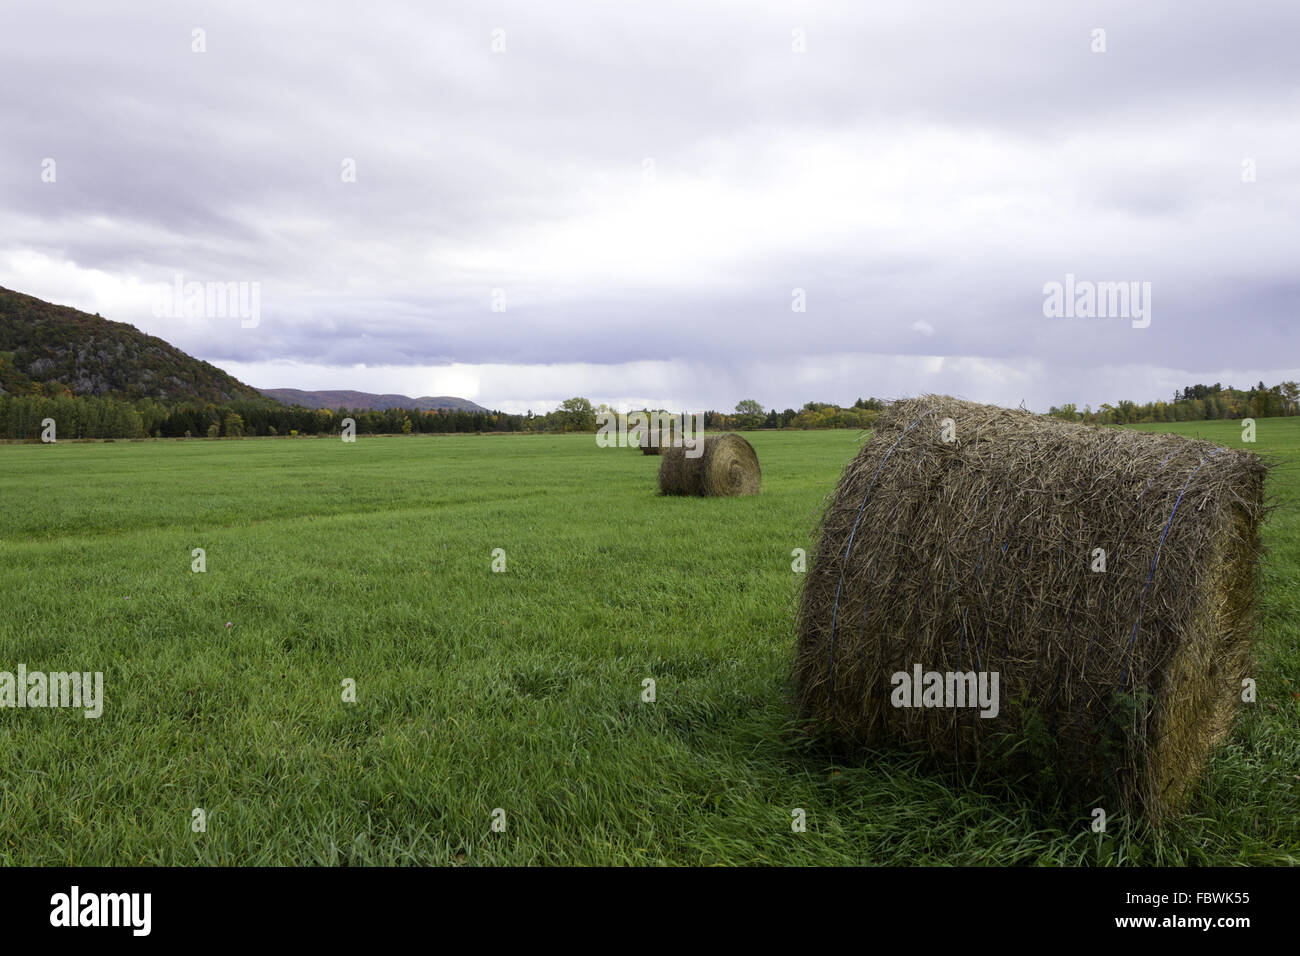 Farm field with bails of hay - Stock Image